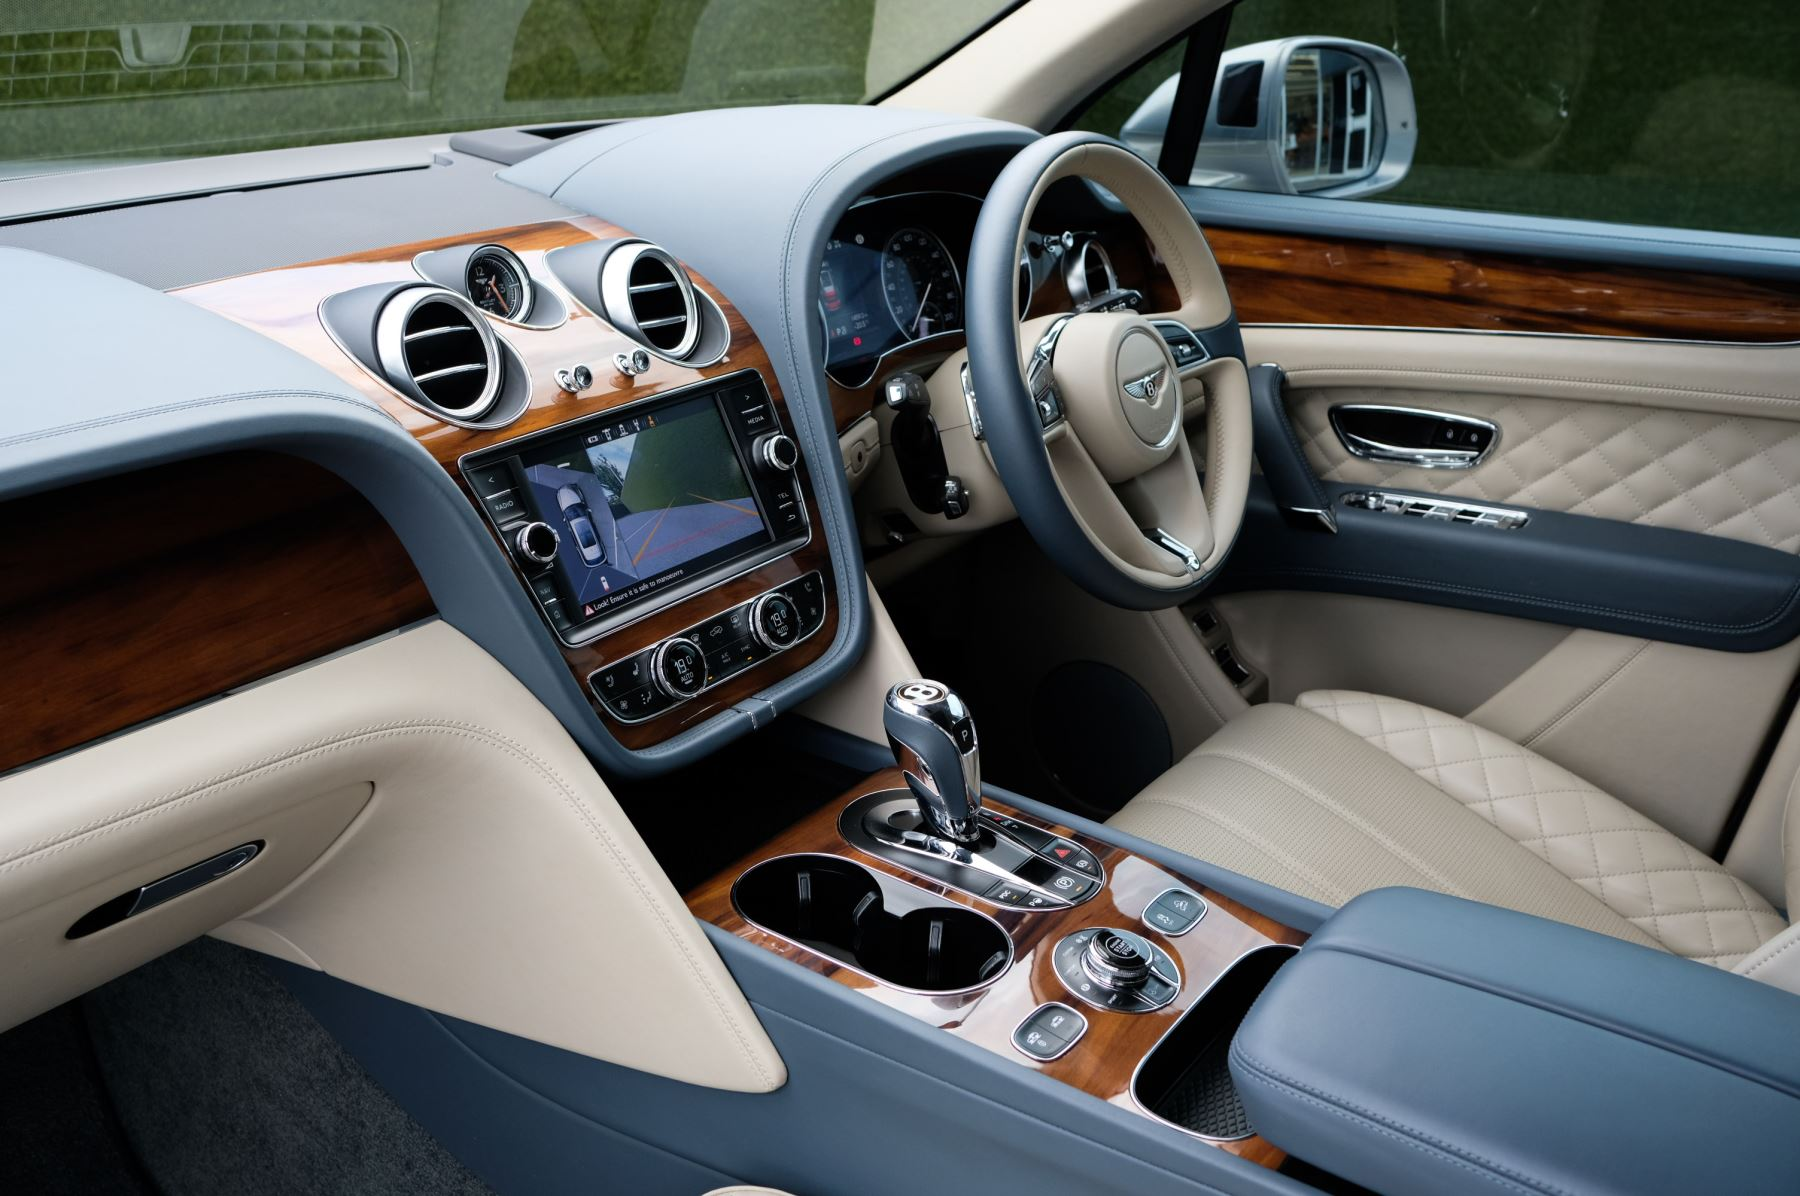 Bentley Bentayga 4.0 V8 - Mulliner Driving Specification with 22 Inch Directional - Black Painted and Polished Alloys image 12